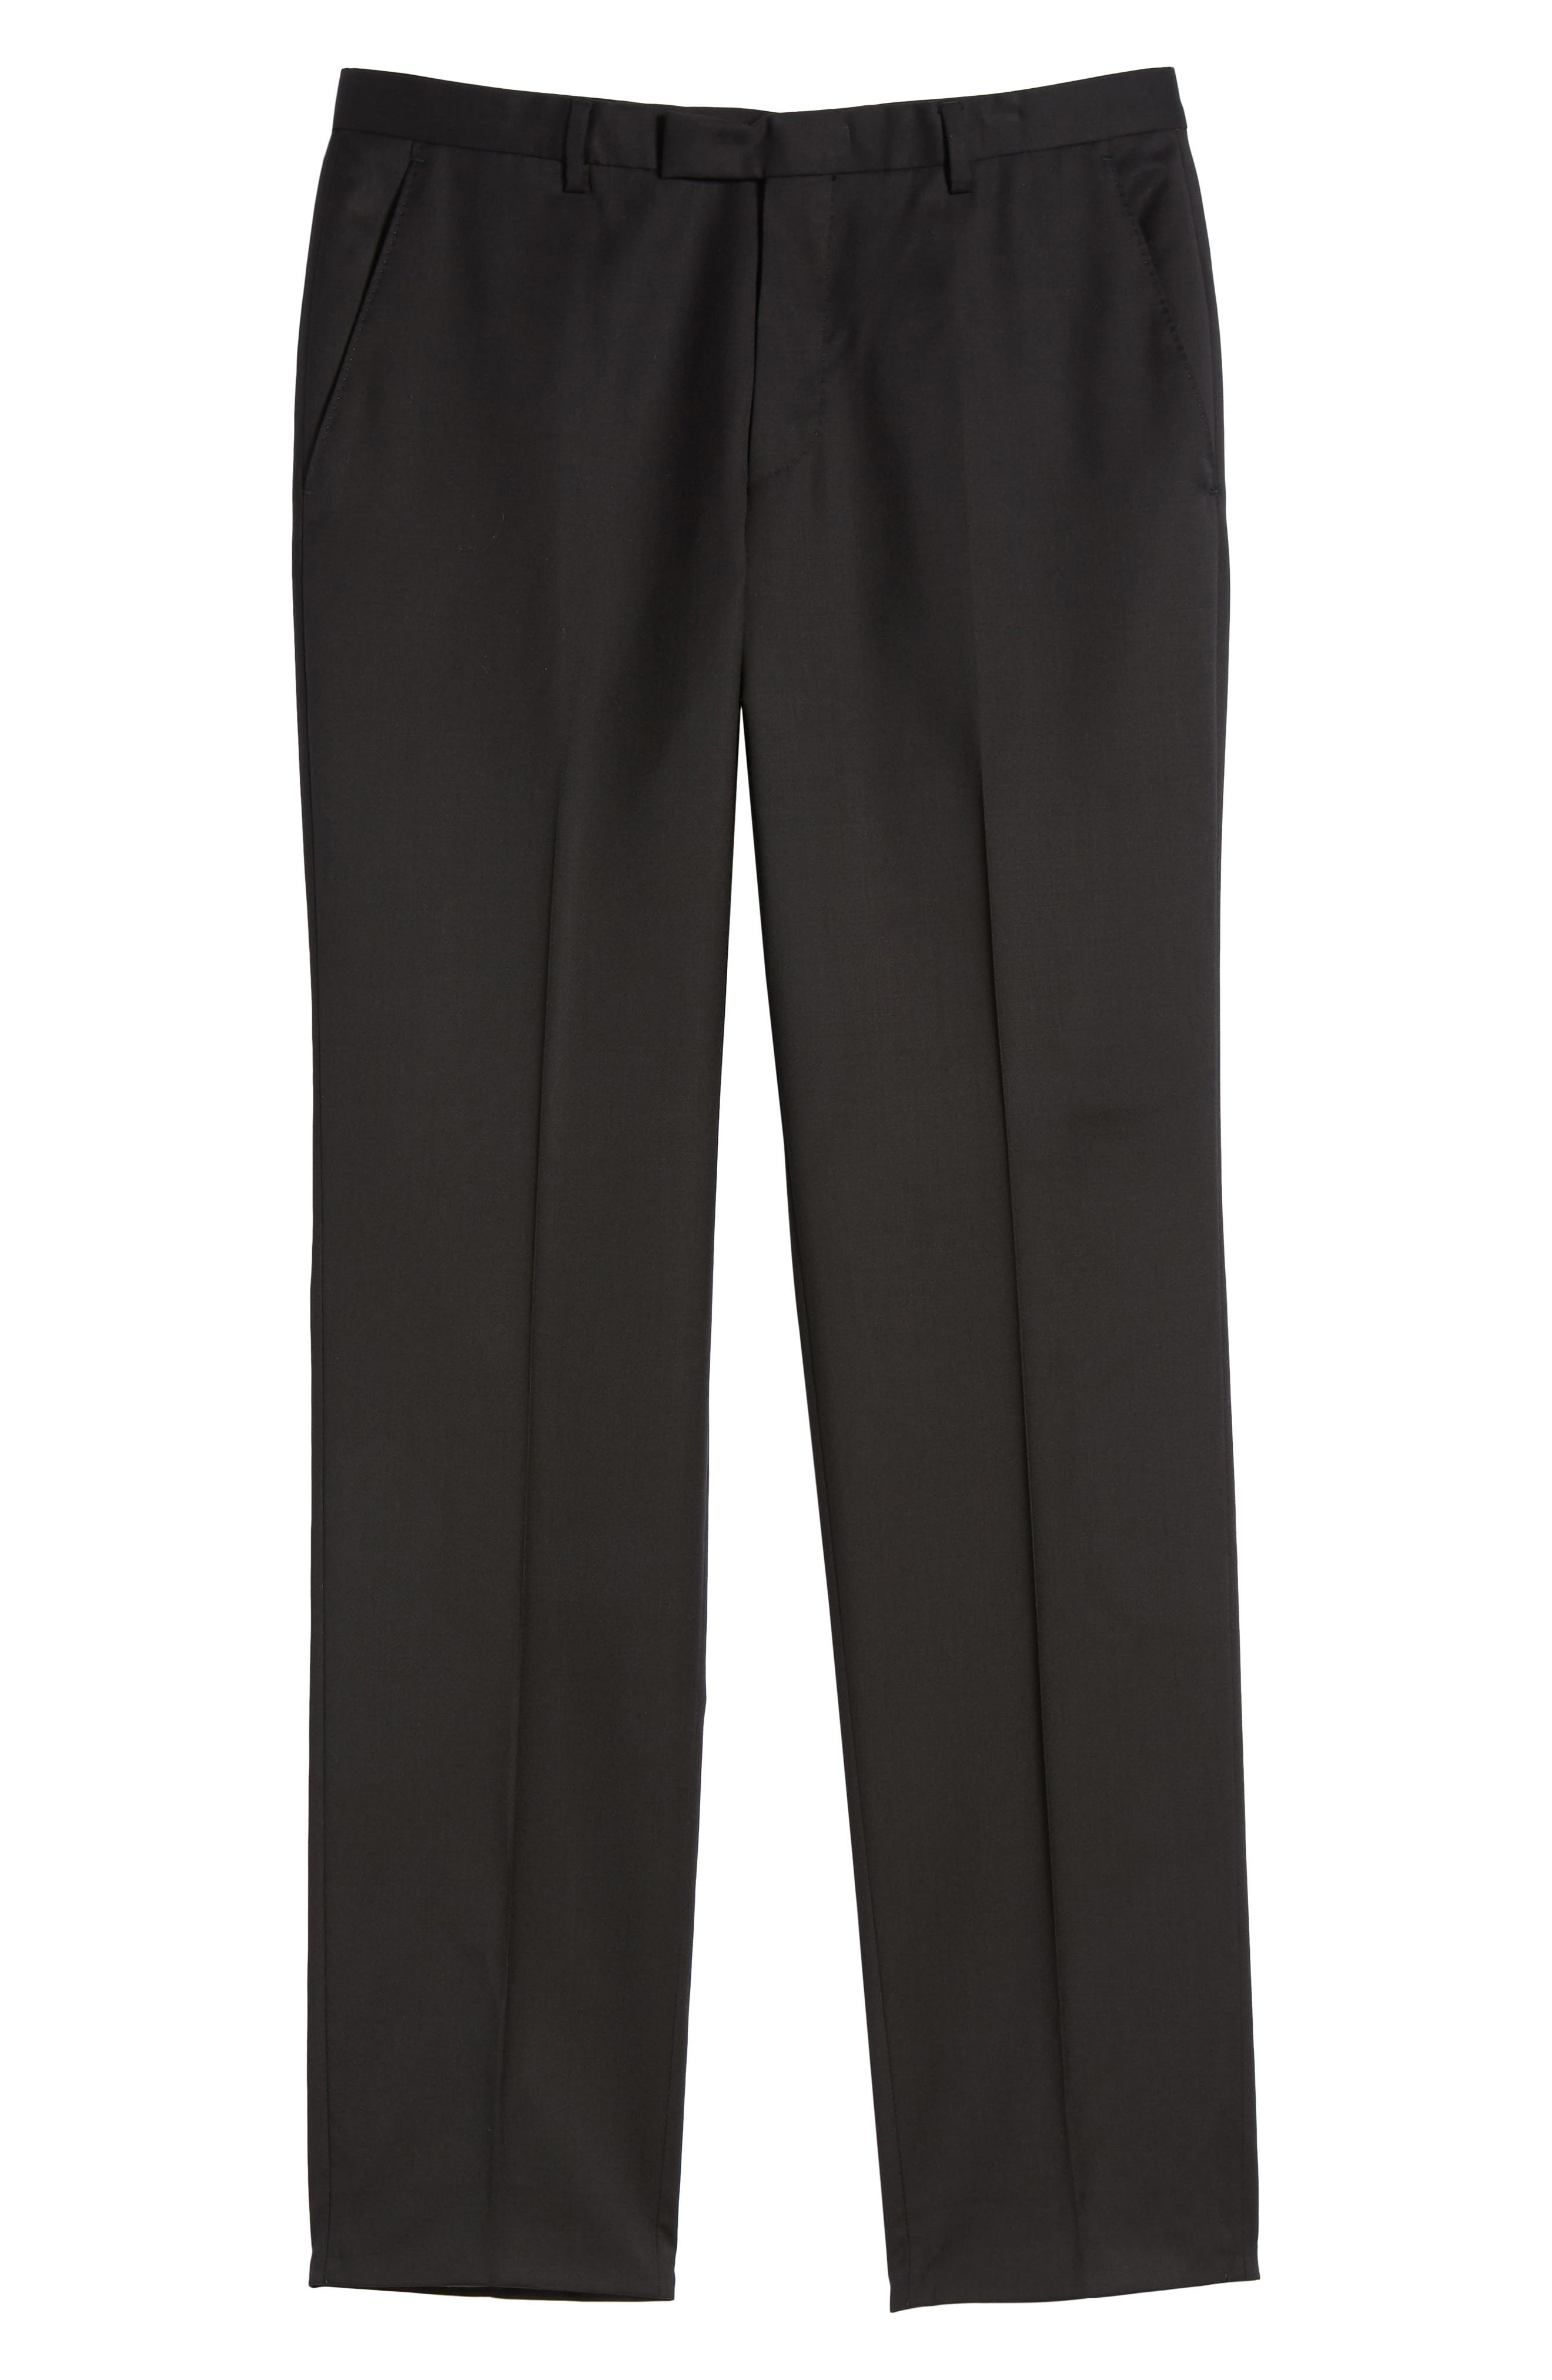 Lenon CYL Flat Front Solid Wool Trousers,                             Alternate thumbnail 6, color,                             BLACK